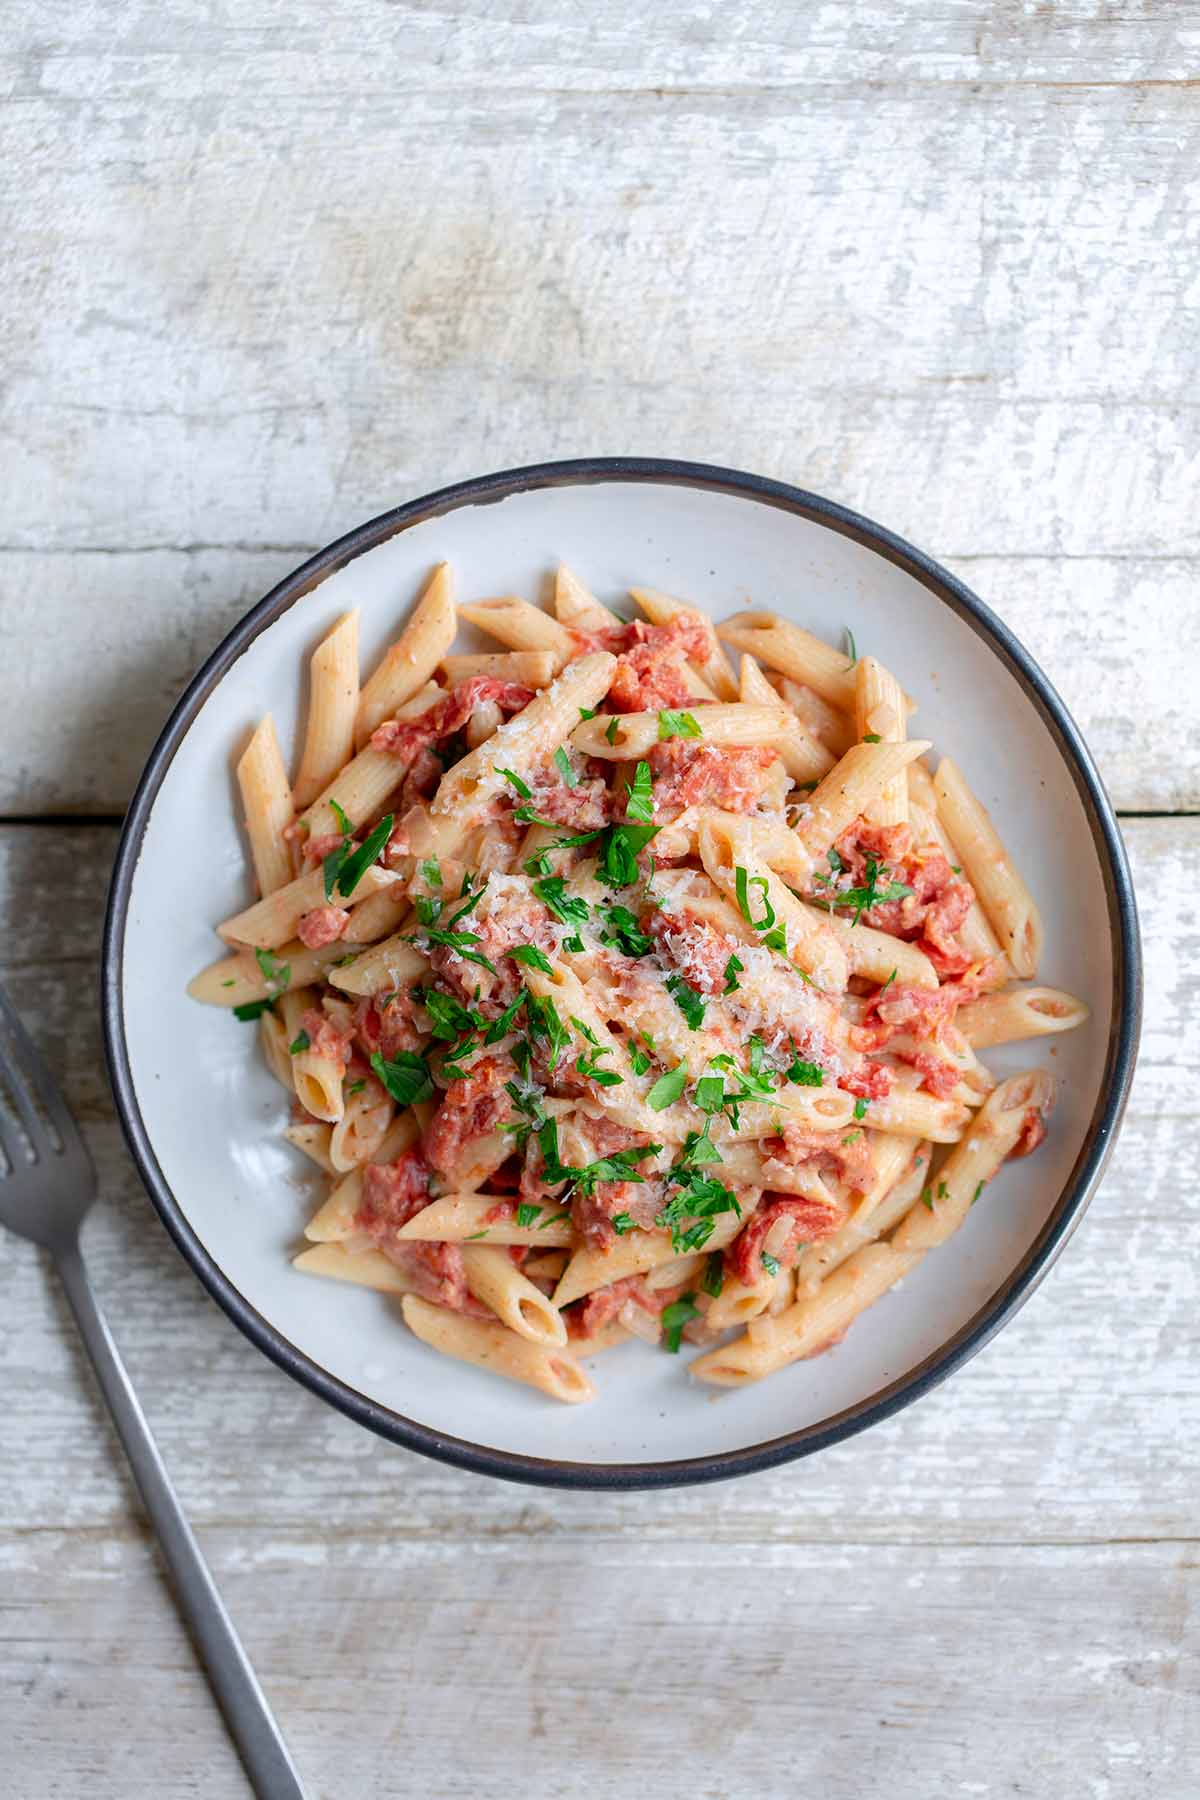 Penne Alla Vodka recipe prepared from whole peeled tomatoes.